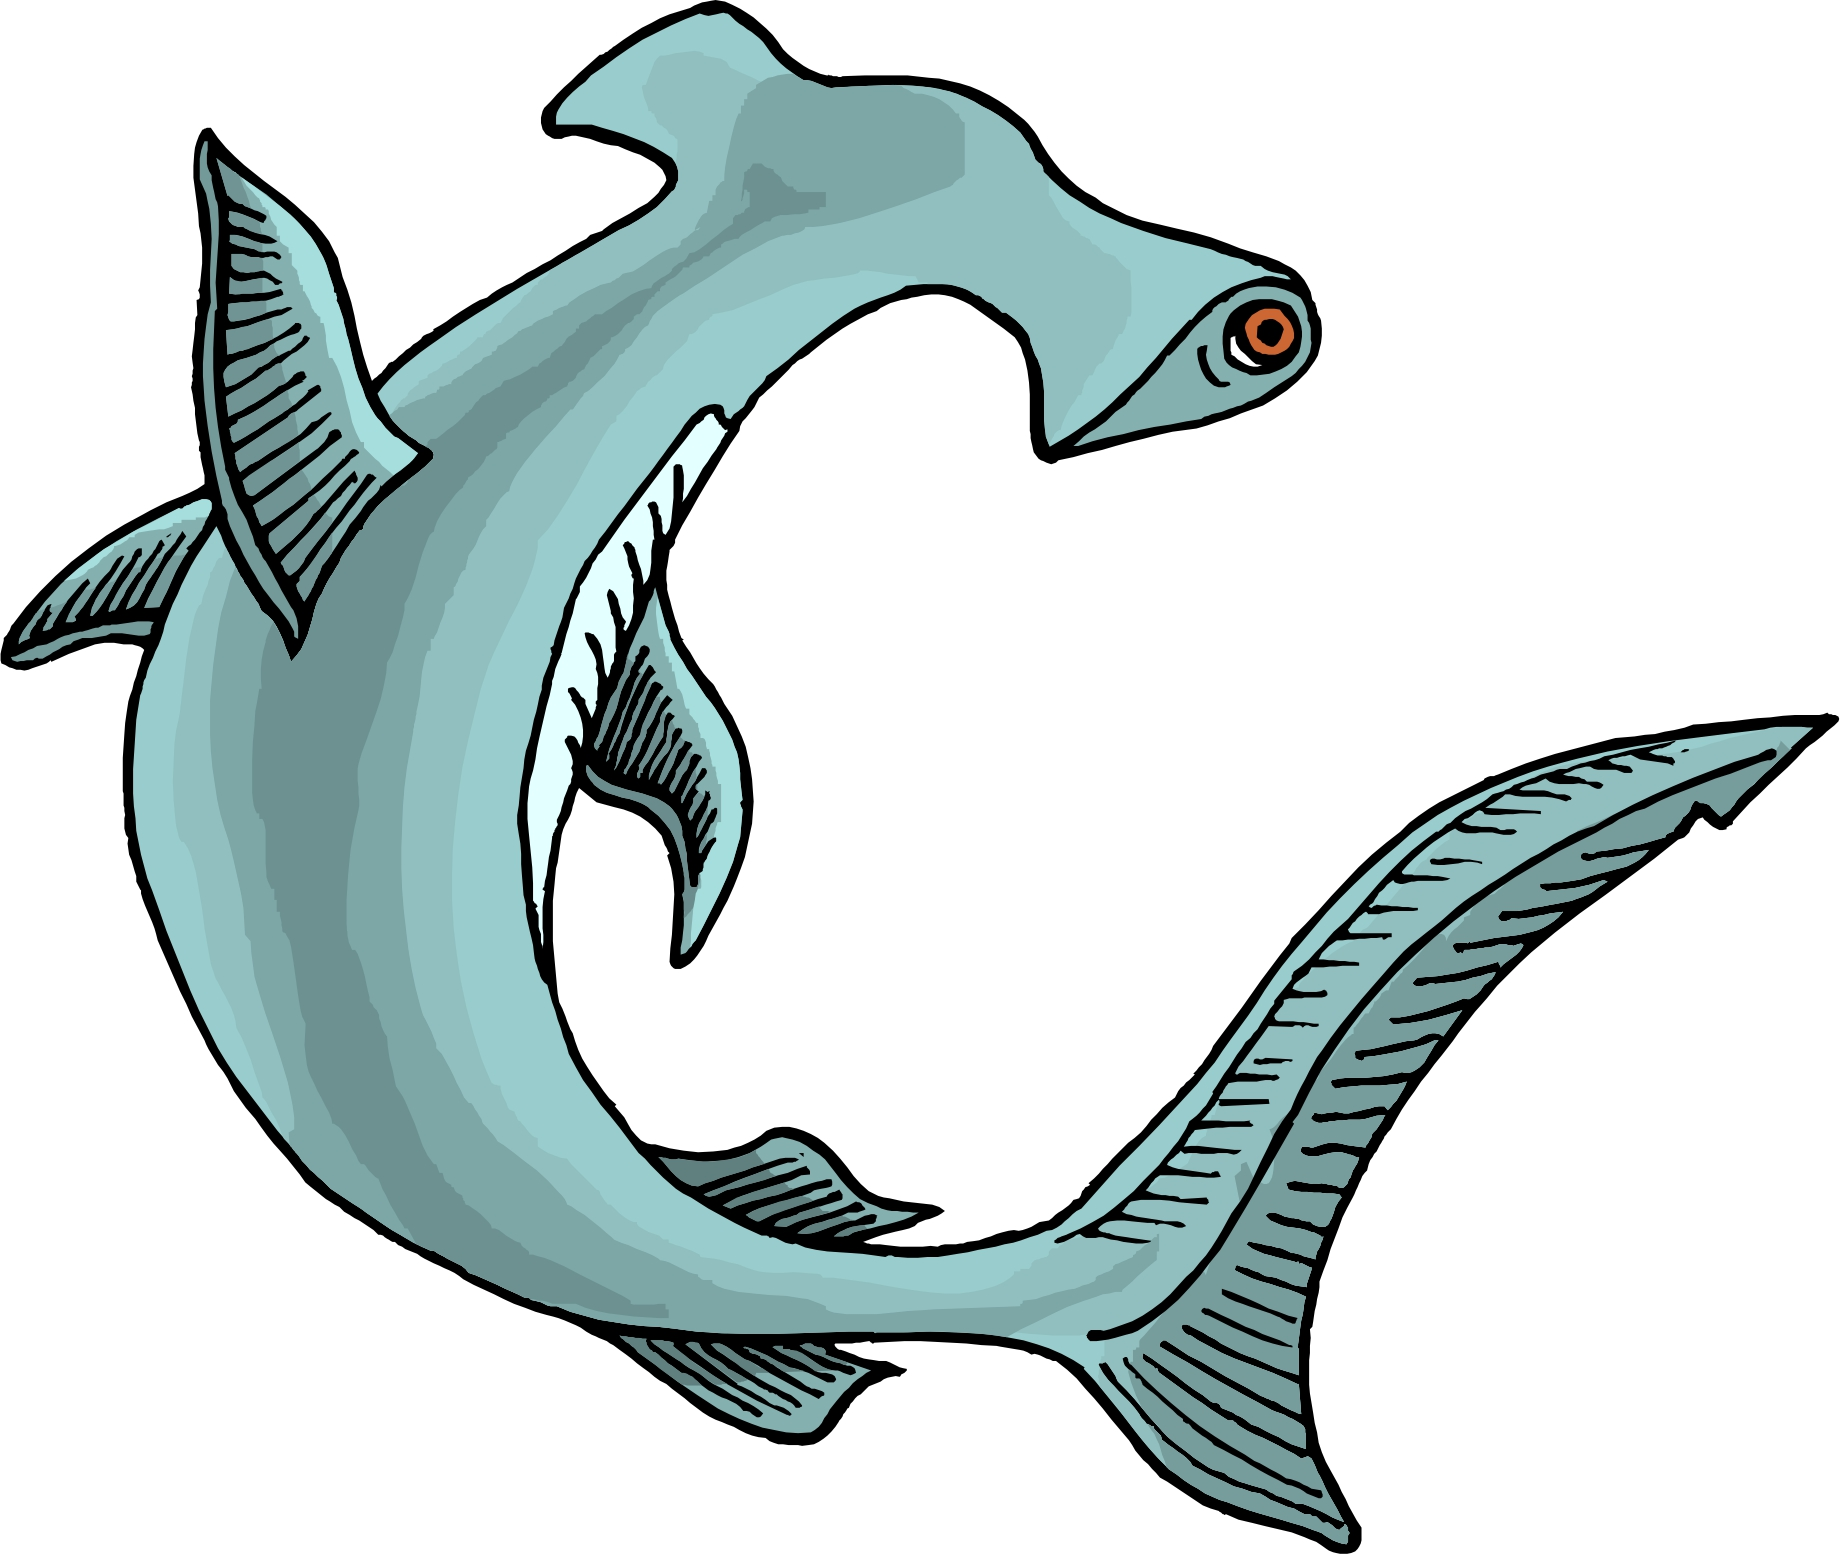 Hammerhead Shark clipart #9, Download drawings